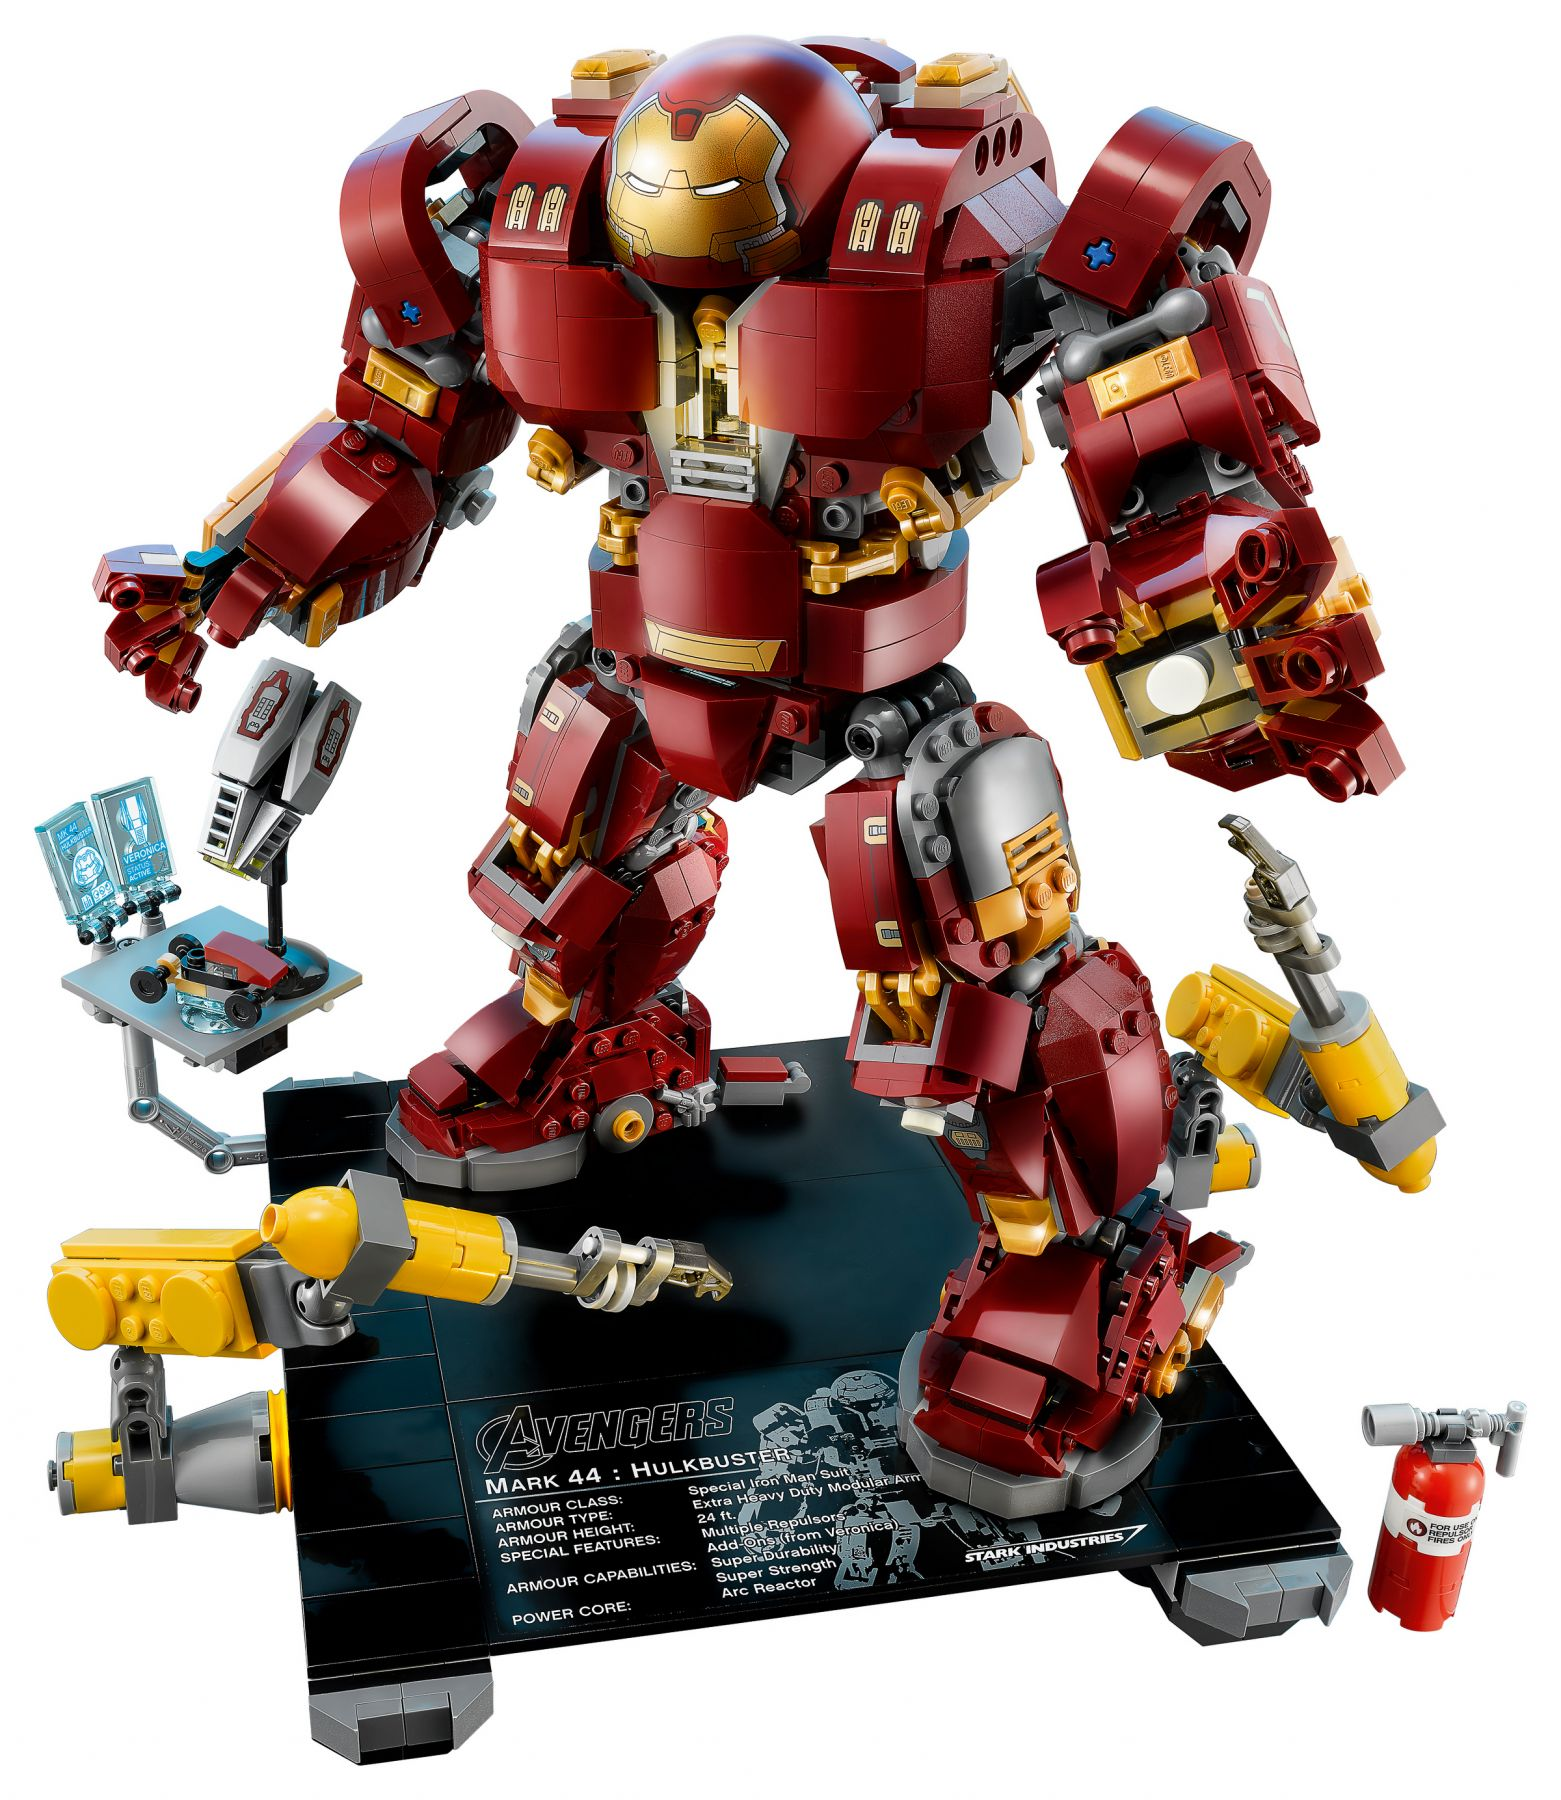 LEGO Super Heroes 76105 Marvel Avengers: Infinity War - The Hulkbuster: Ultron Edition LEGO_76105_alt2.jpg